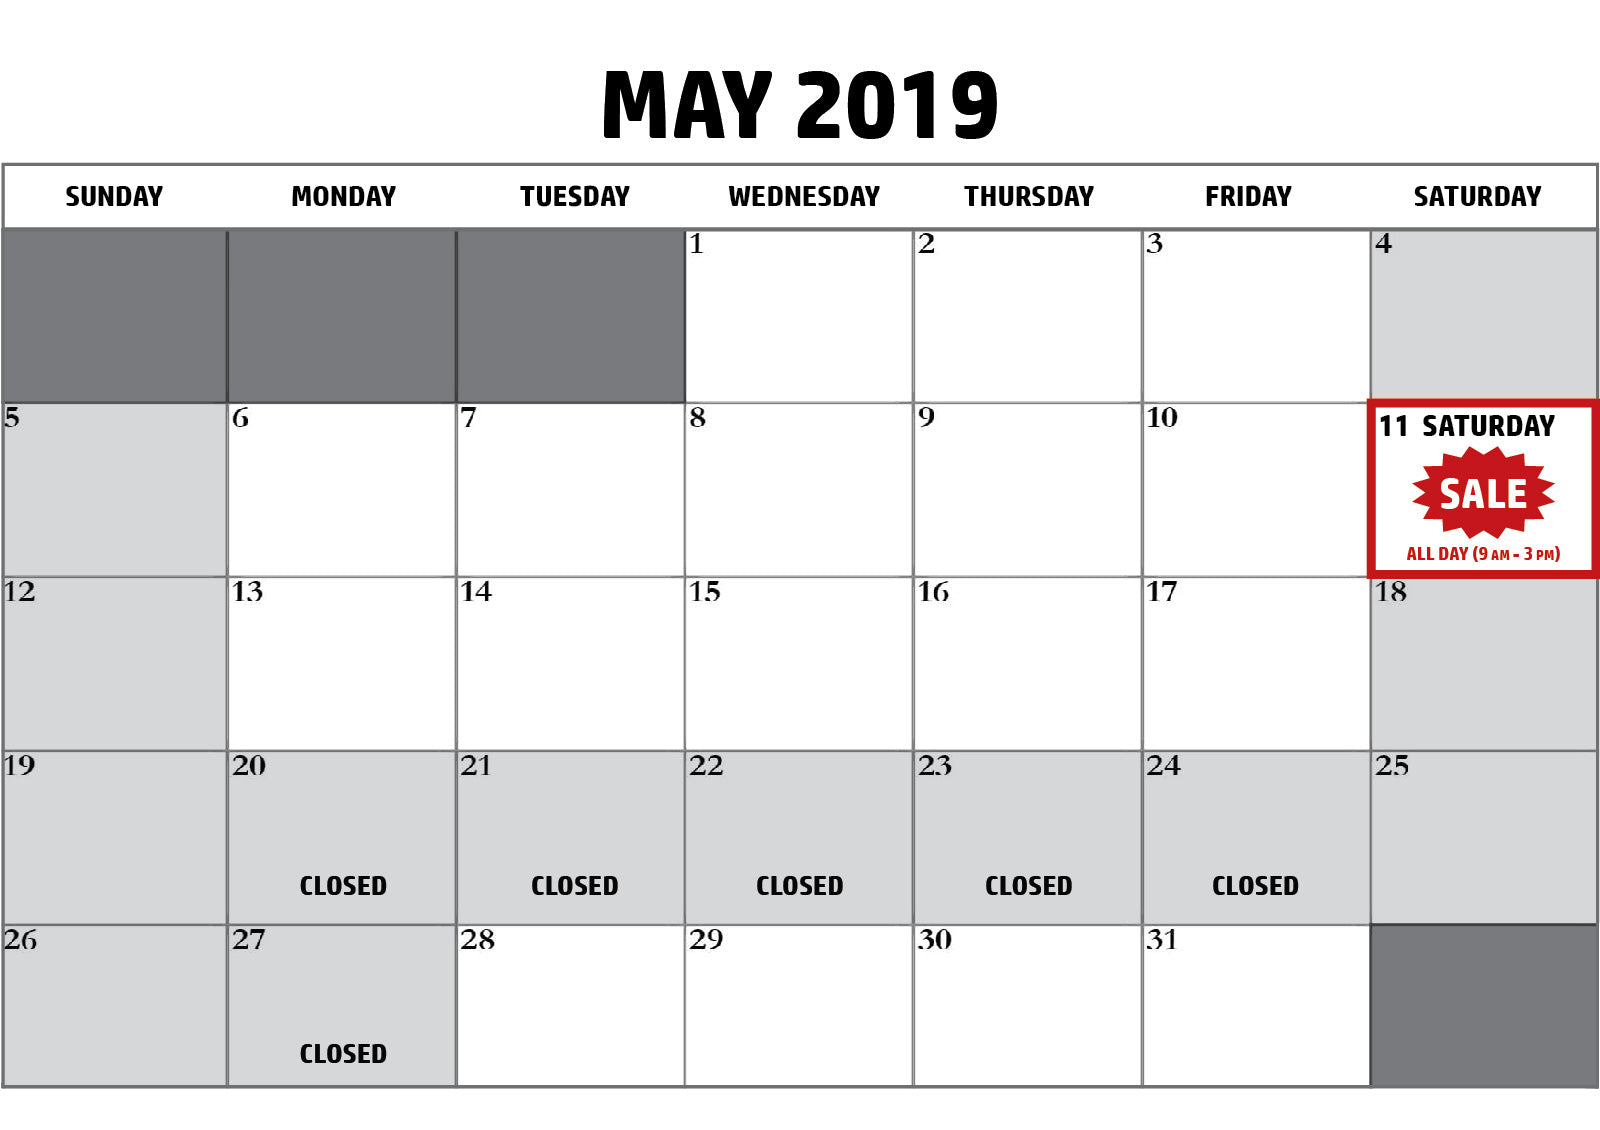 Bellingham sign shop hours of operation May 2019